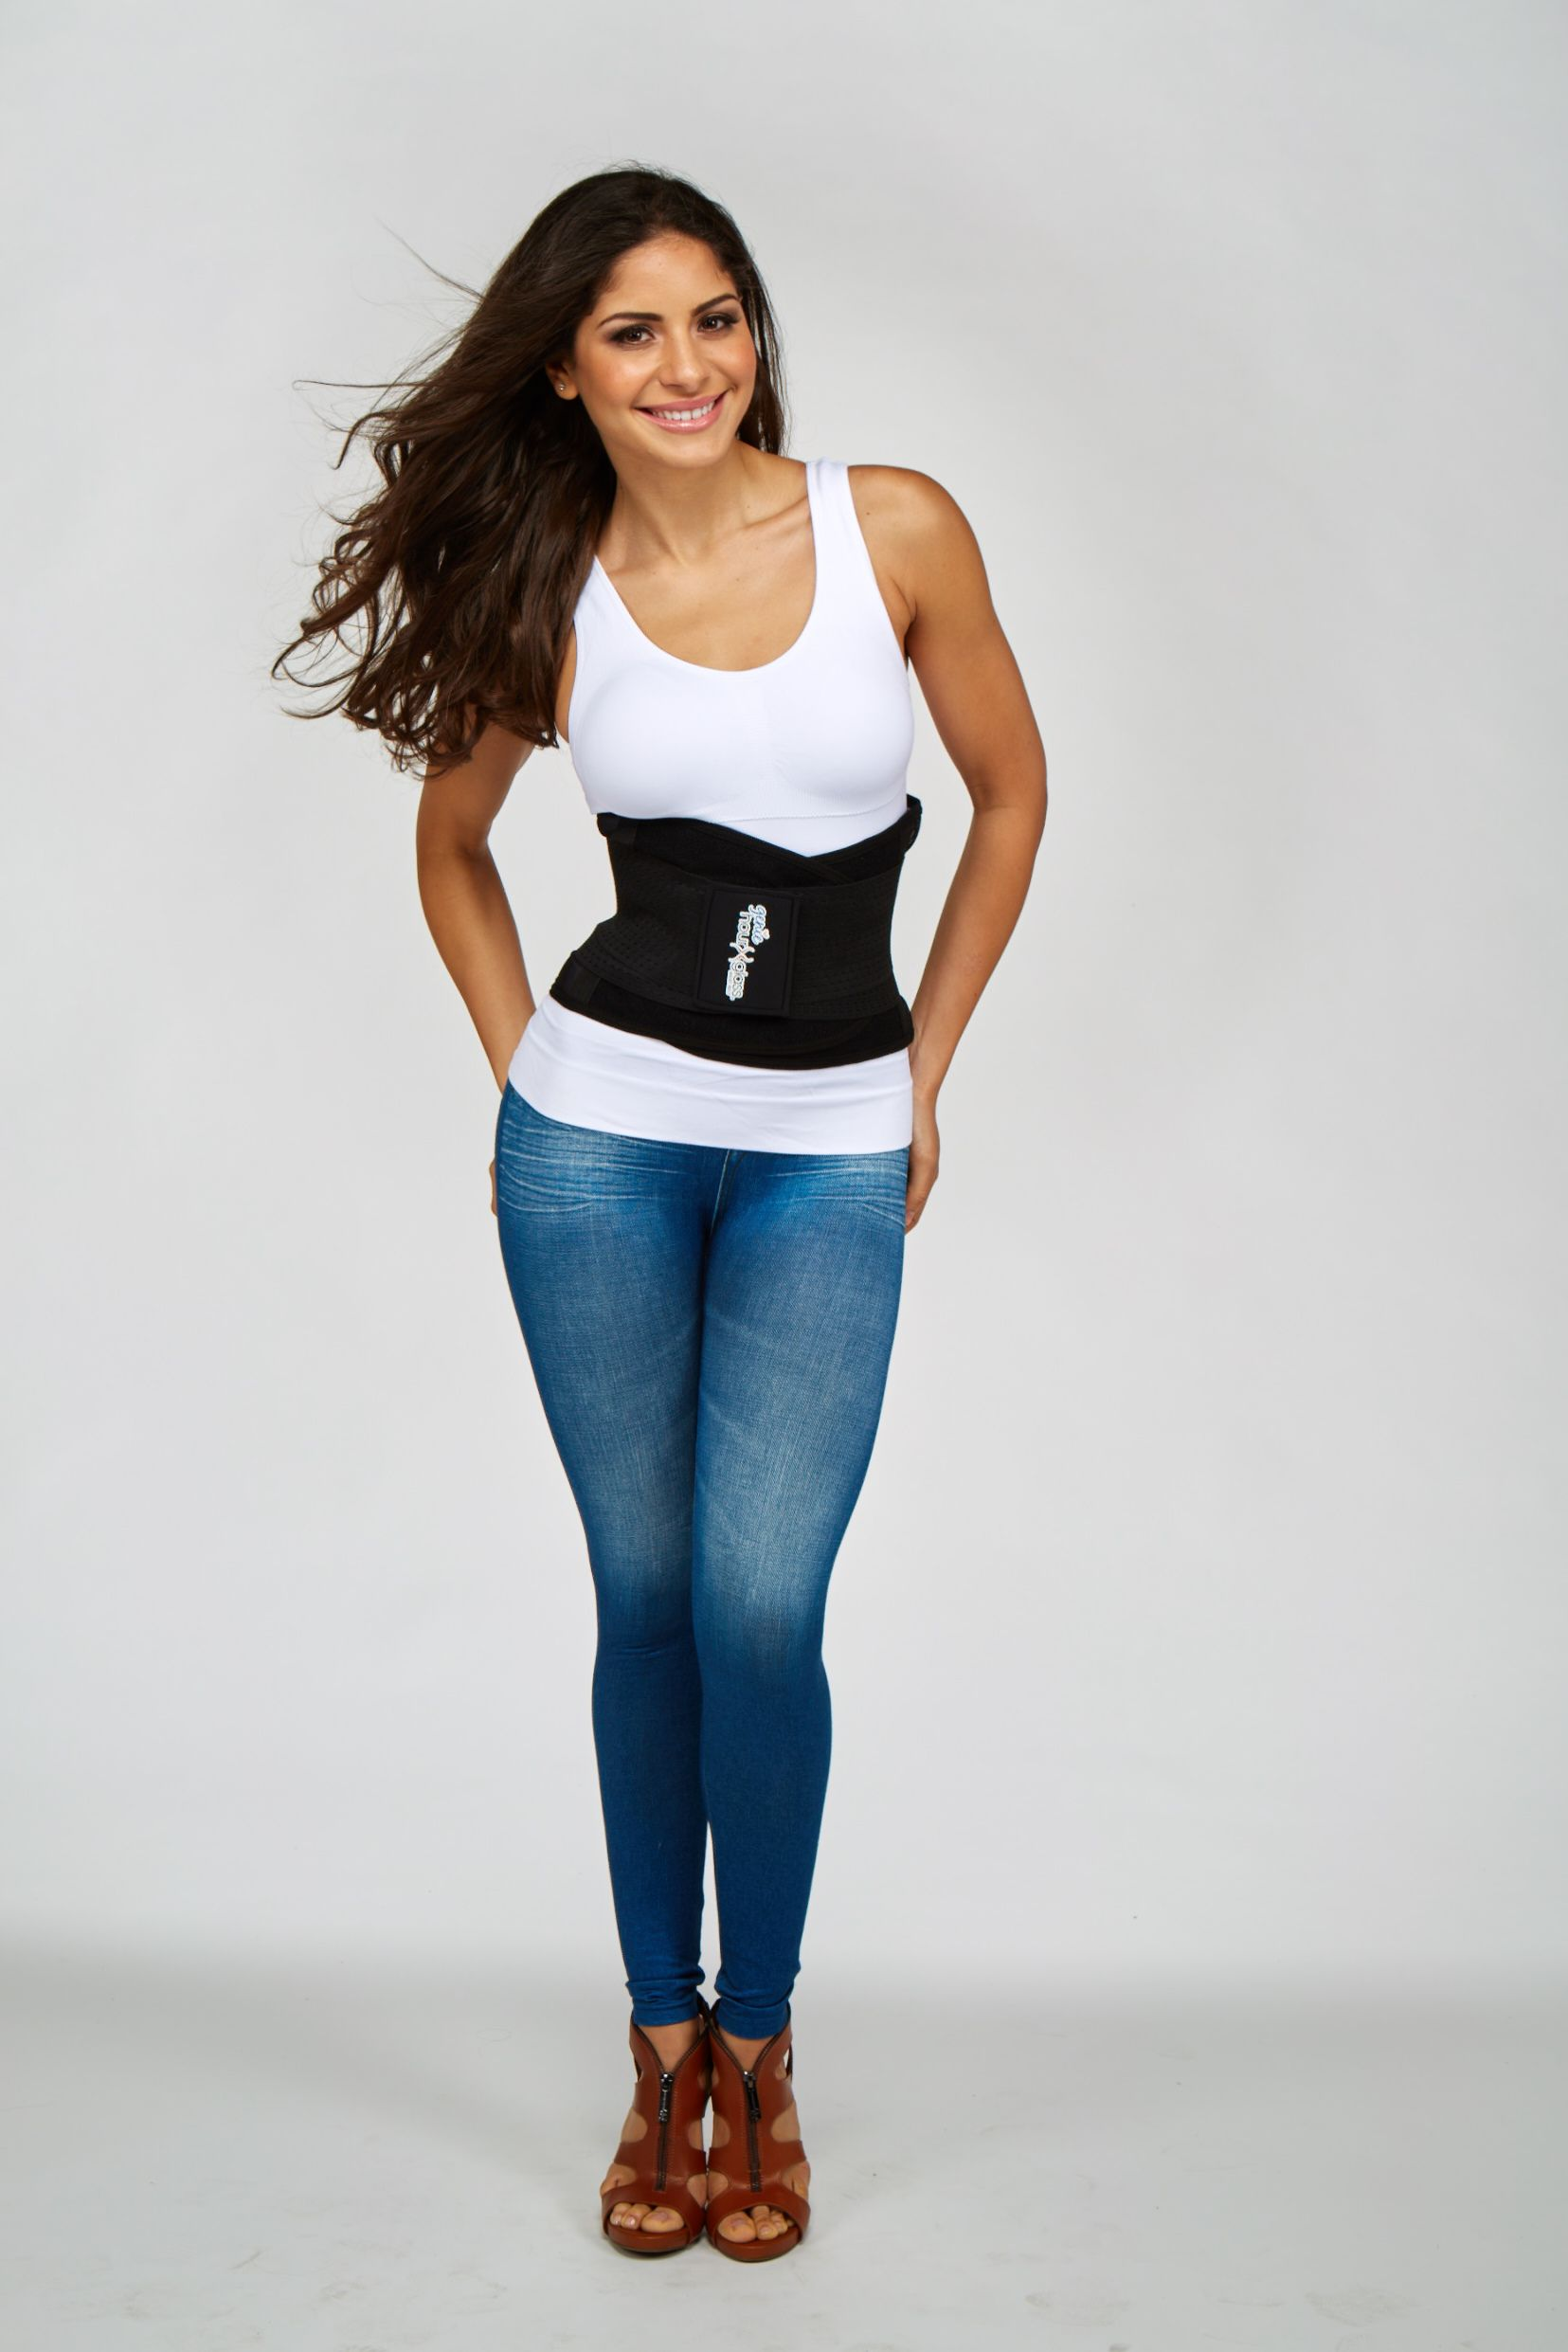 dd5c1cf8f8 The Genie Hourglass Waist Belt smoothes your midsection and creates an  hourglass shape!  WaistTrainer  WaistTraining  WaistGang  WaistGangSociety